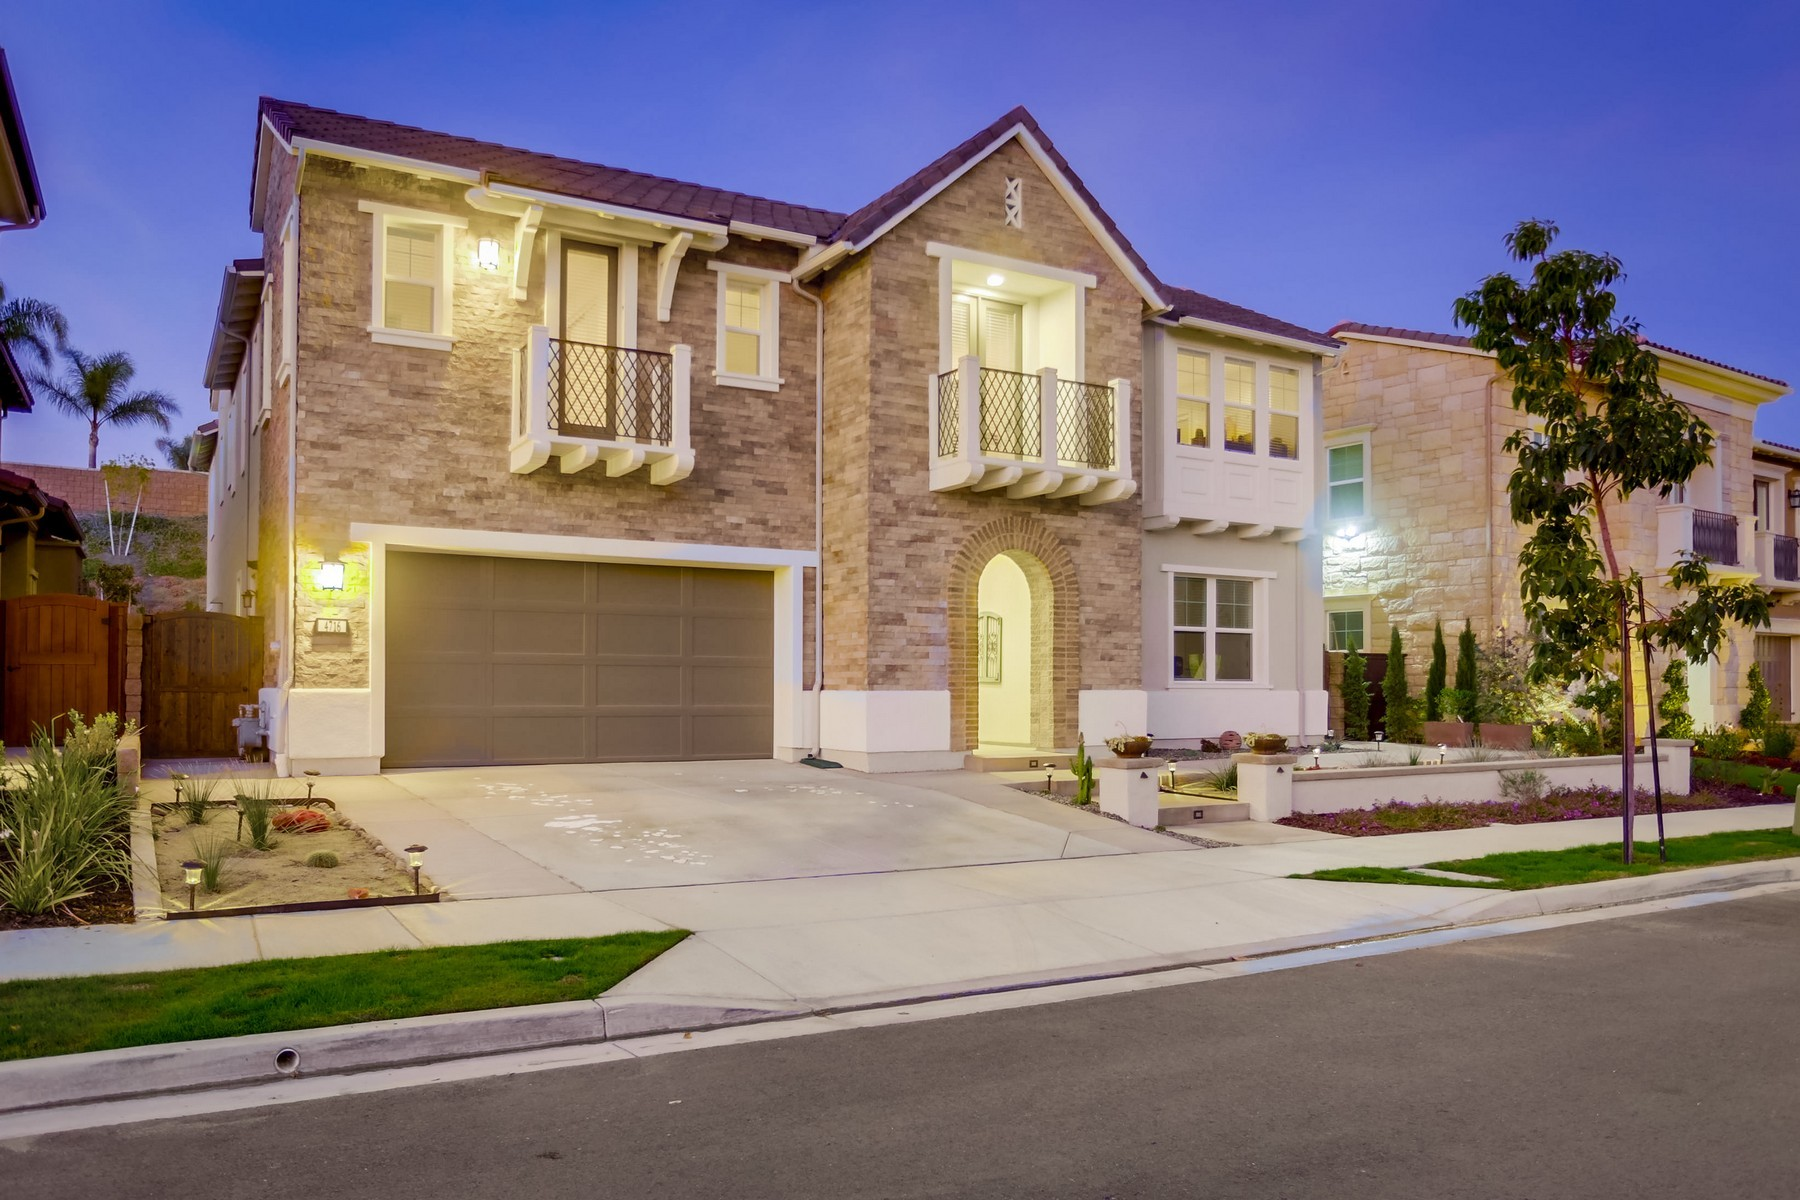 Single Family Home for Active at 4716 Borden Ct 4716 Borden Court Carlsbad, California 92010 United States